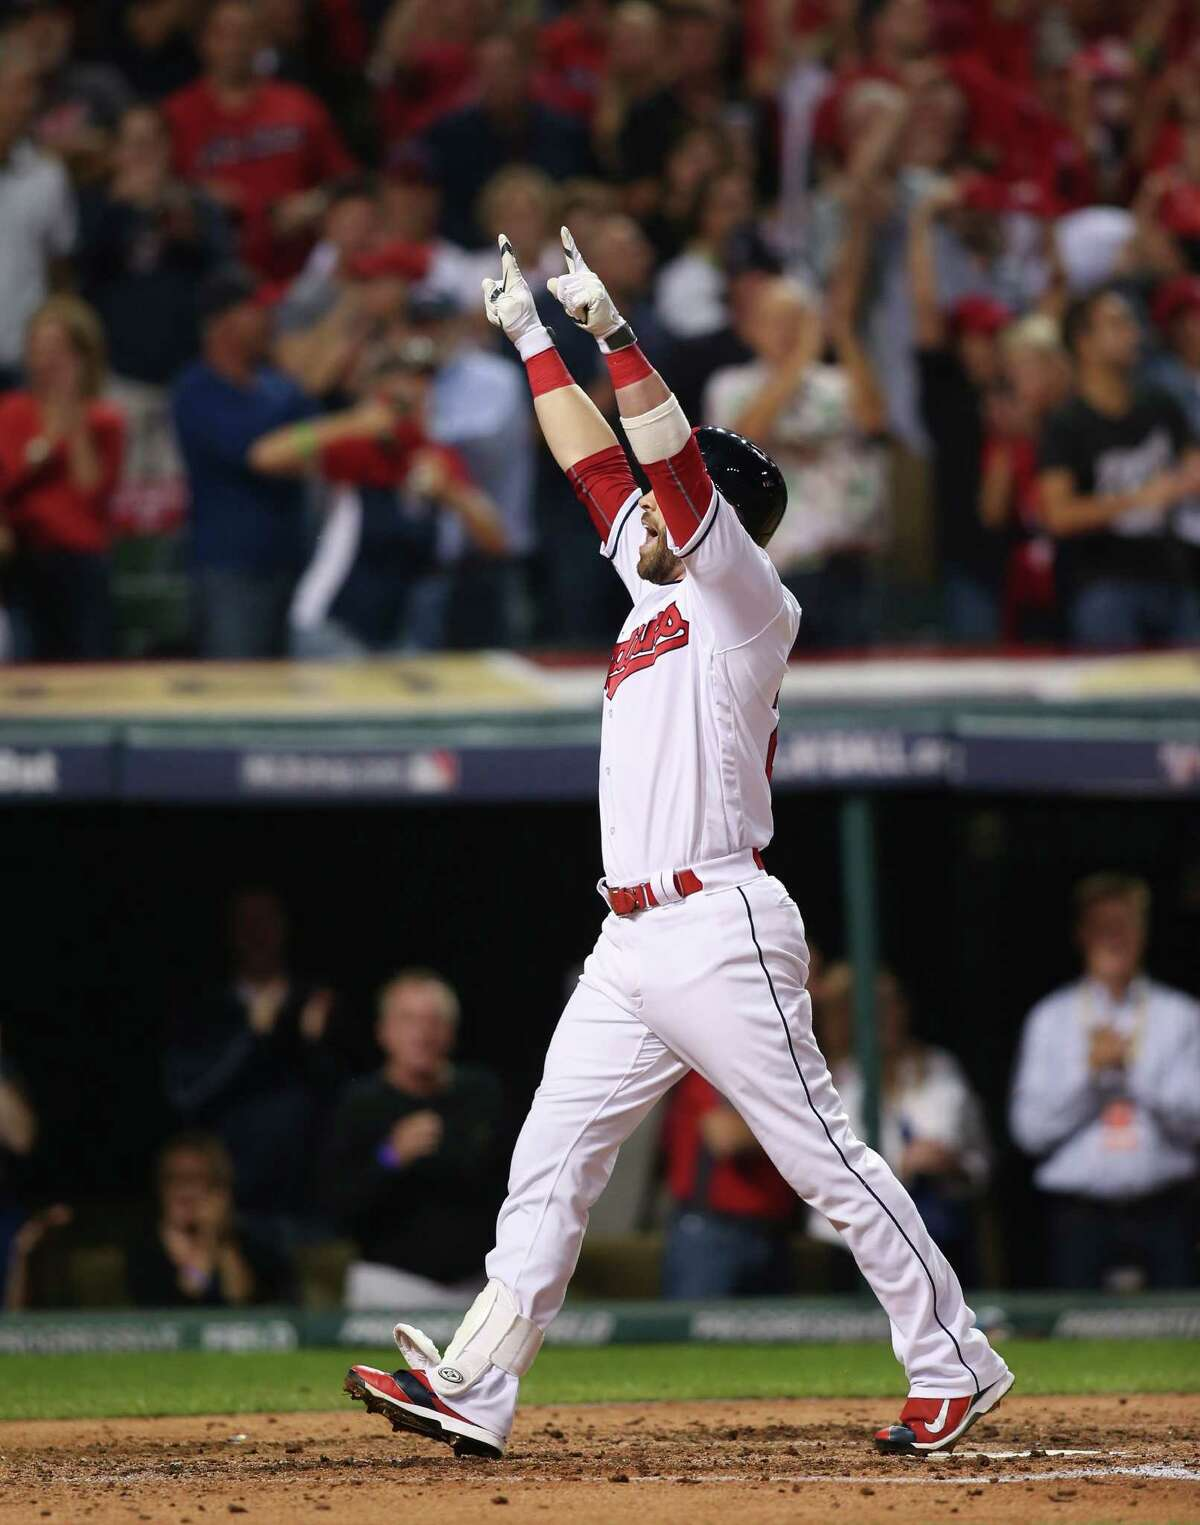 Cleveland Indians' Jason Kipnis celebrates his solo home run against the Boston Red Sox in the third inning during Game 1 of baseball's American League Division Series, Thursday, Oct. 6, 2016, in Cleveland.